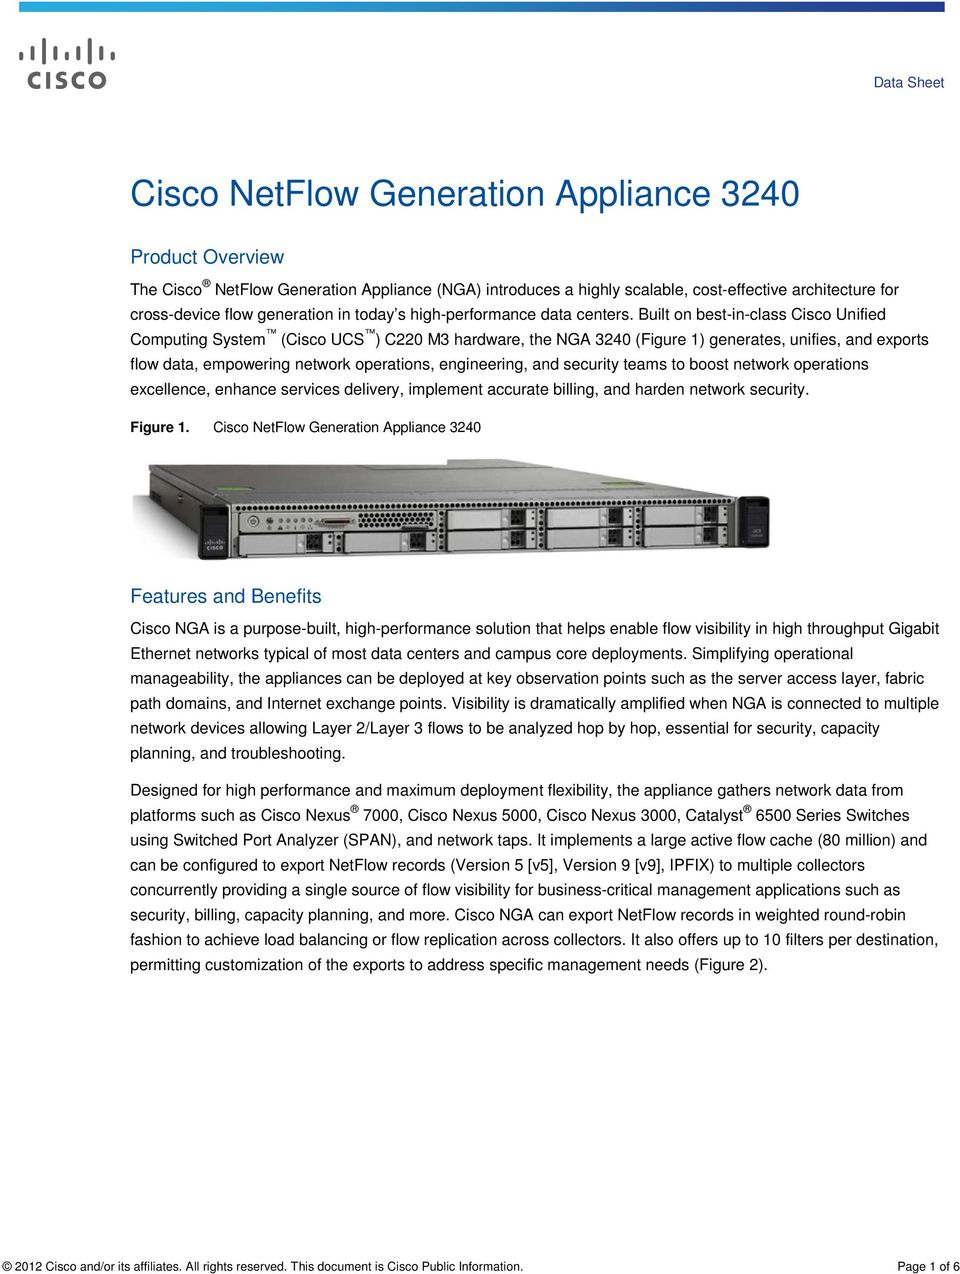 Built on best-in-class Cisco Unified Computing System (Cisco UCS ) C220 M3 hardware, the NGA 3240 (Figure 1) generates, unifies, and exports flow data, empowering network operations, engineering, and